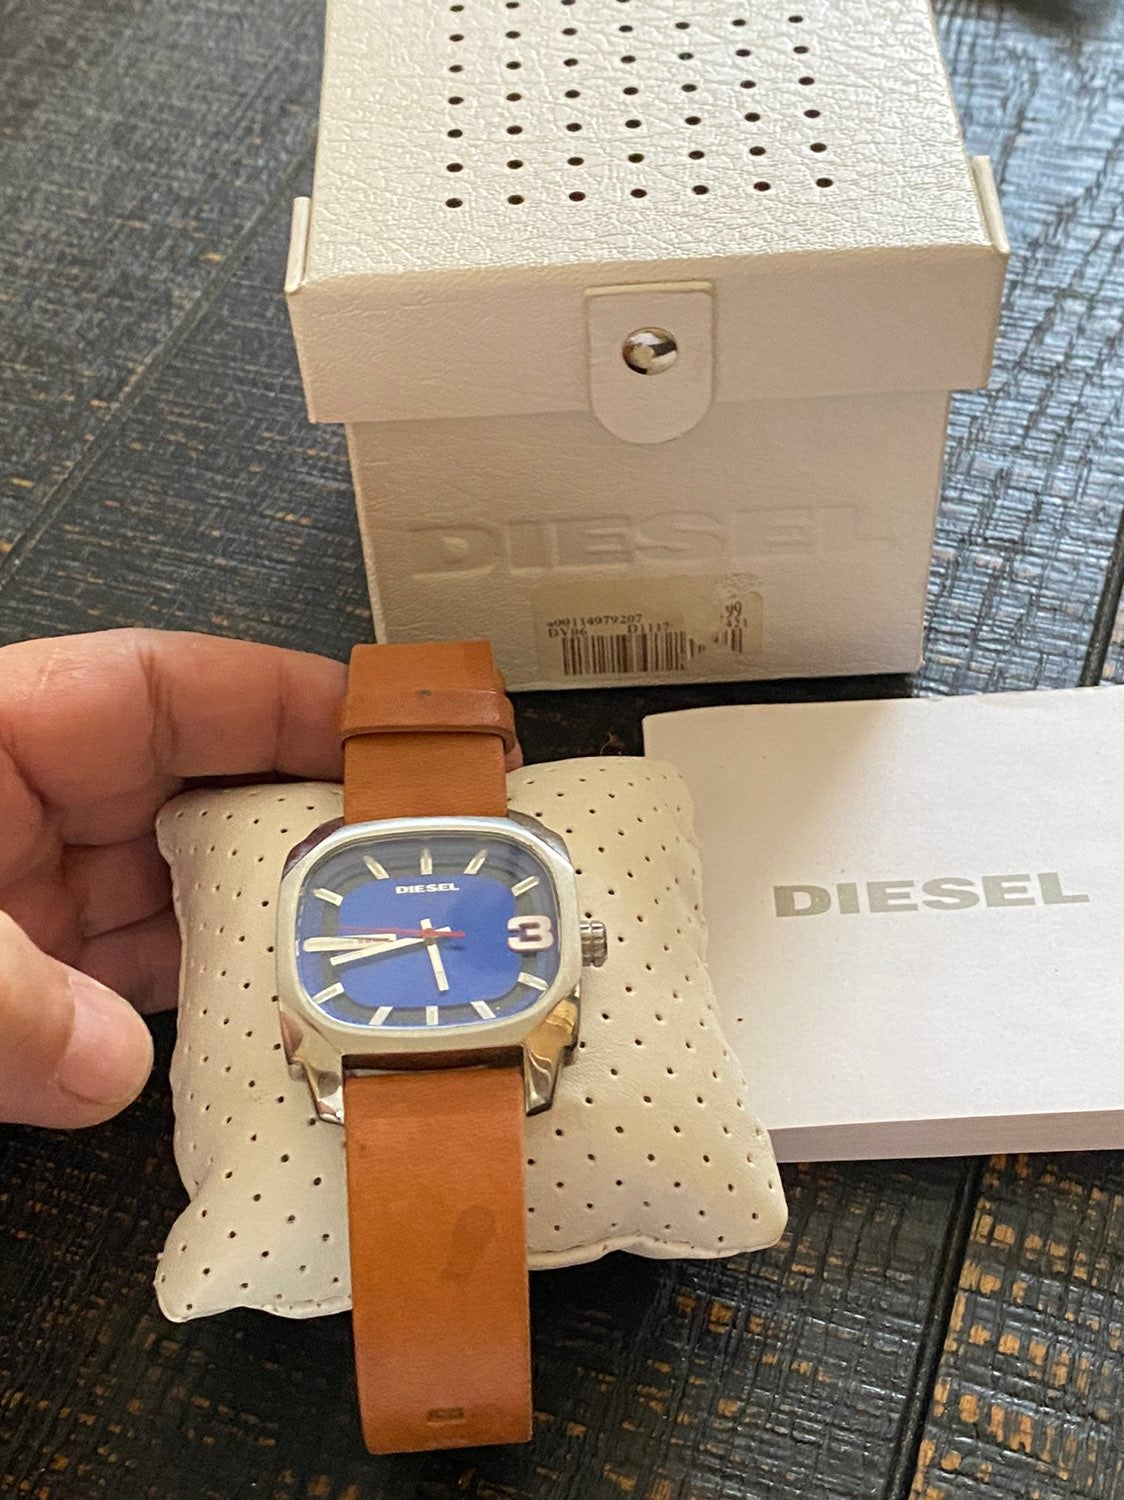 Diesel Watch Tan on Chrome and Blue face